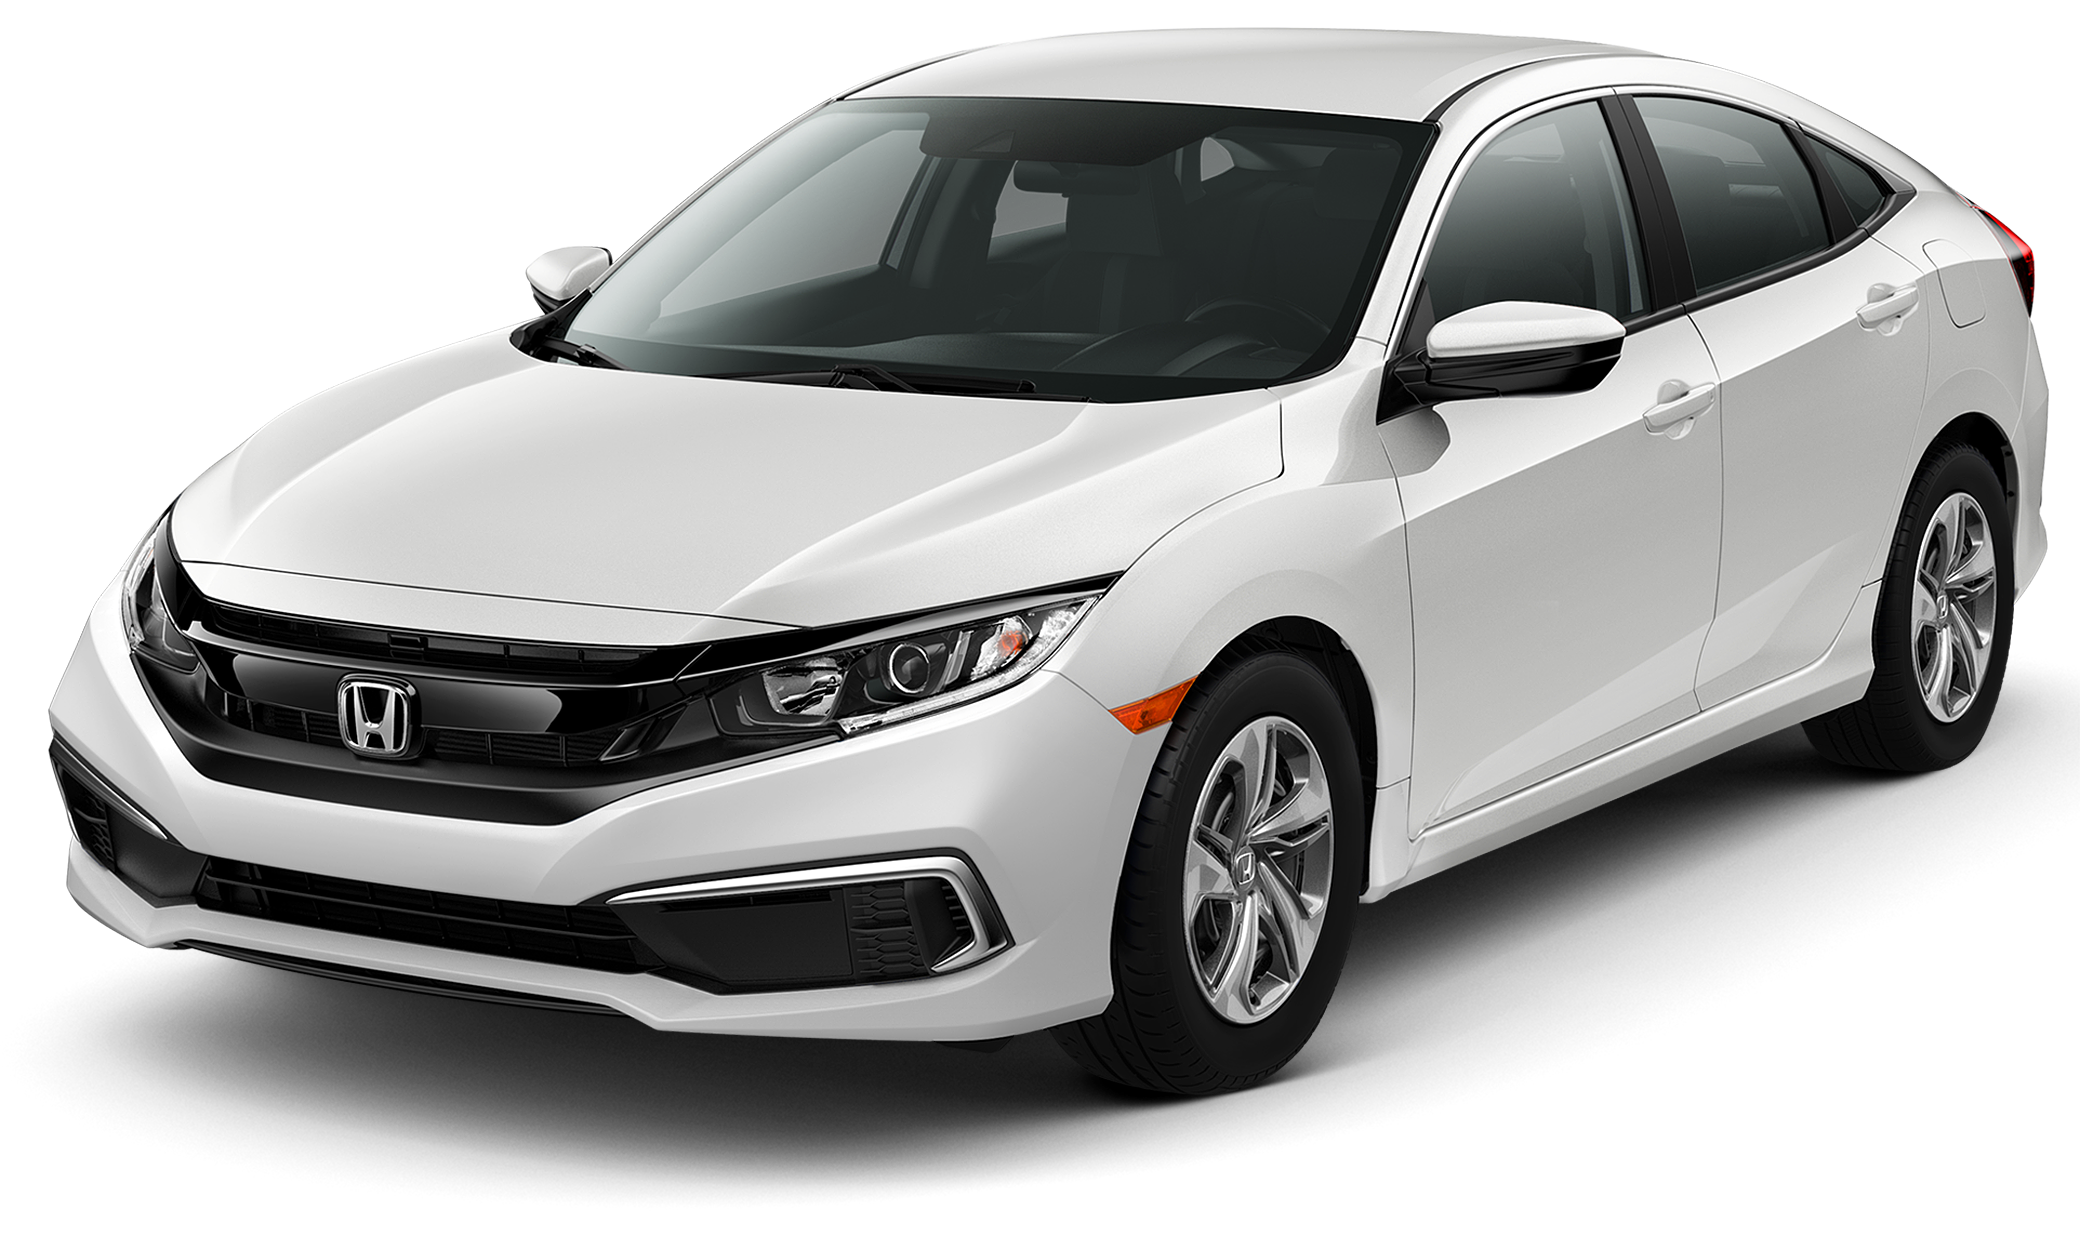 Honda Dealer Wexford PA | Baierl Honda serving Pittsburgh PA